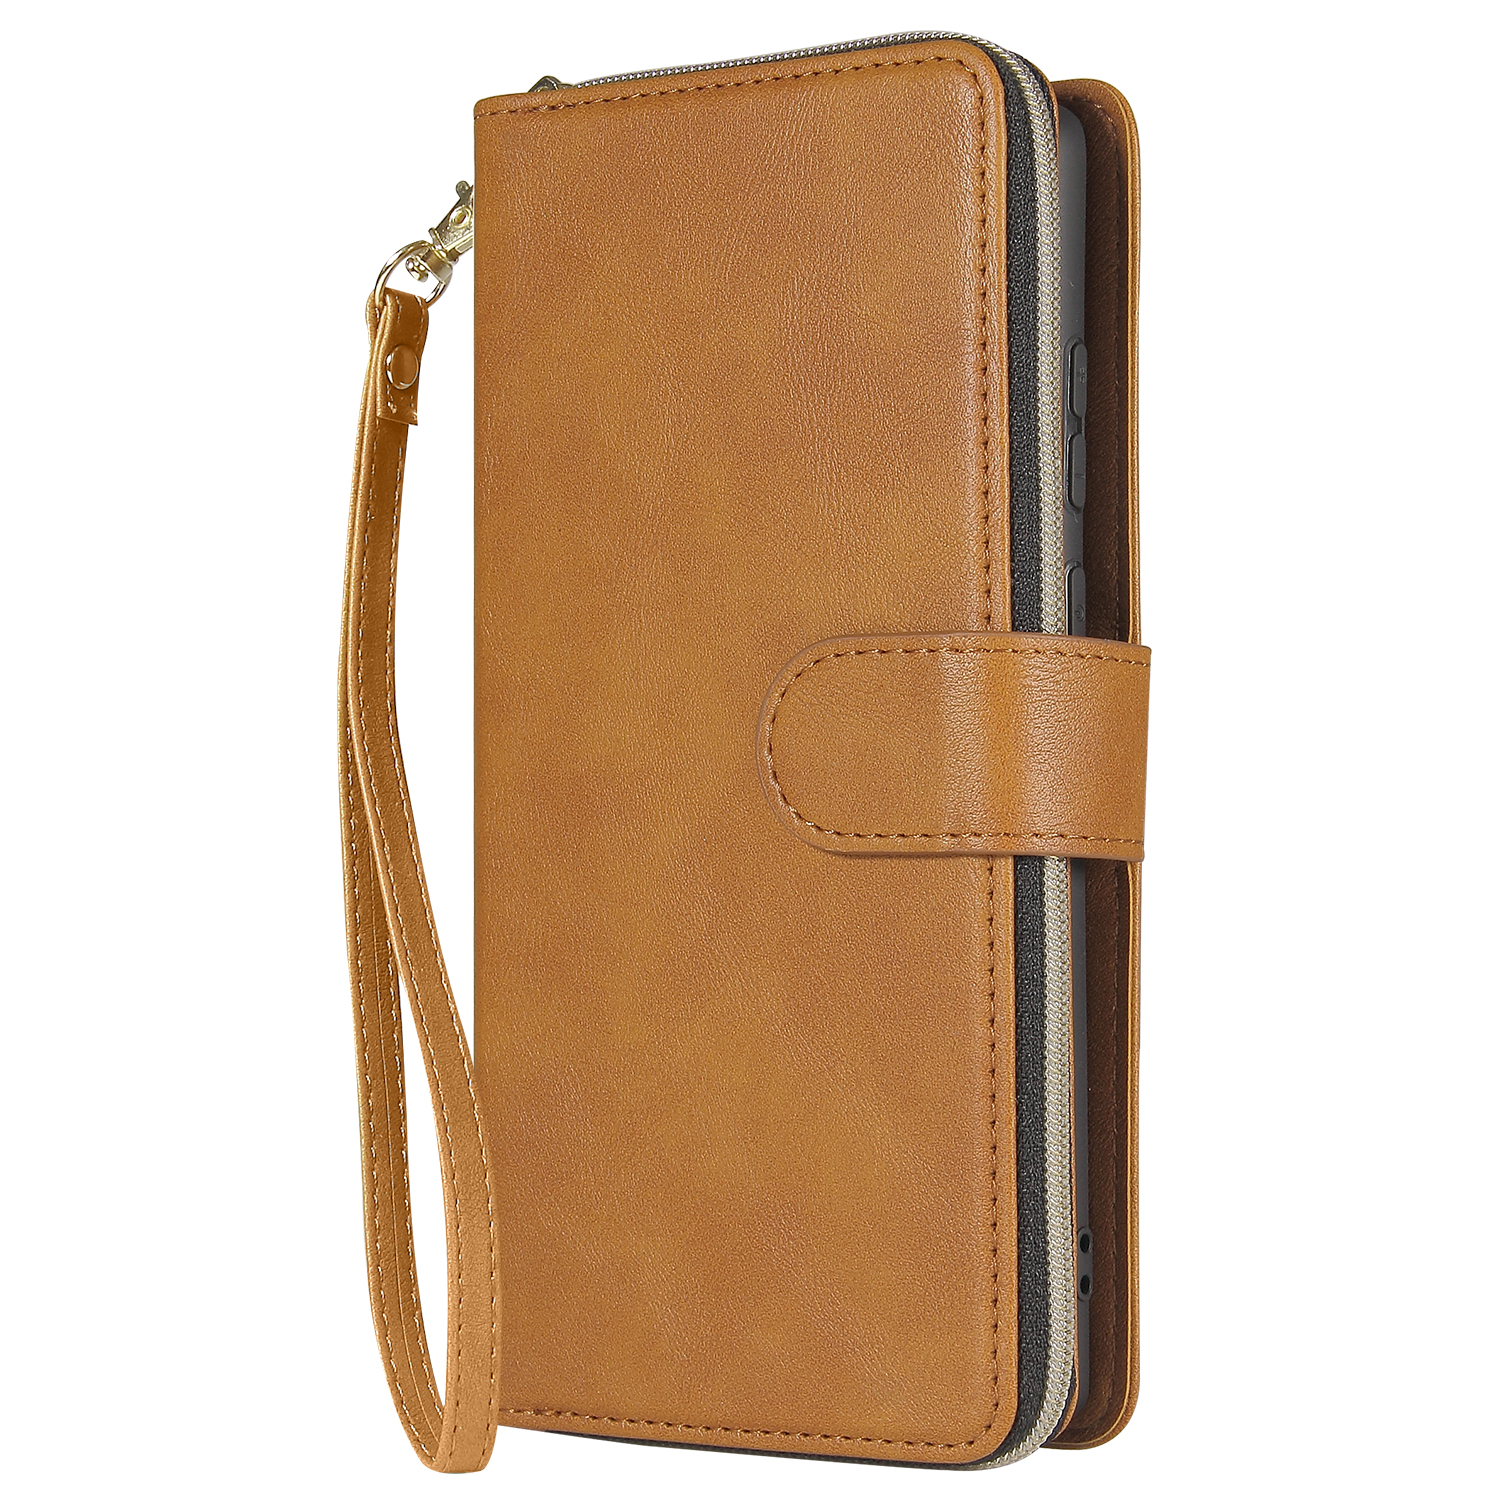 For Samsung A51 5G/A71 5G/Note 10 pro Pu Leather  Mobile Phone Cover Zipper Card Bag + Wrist Strap brown